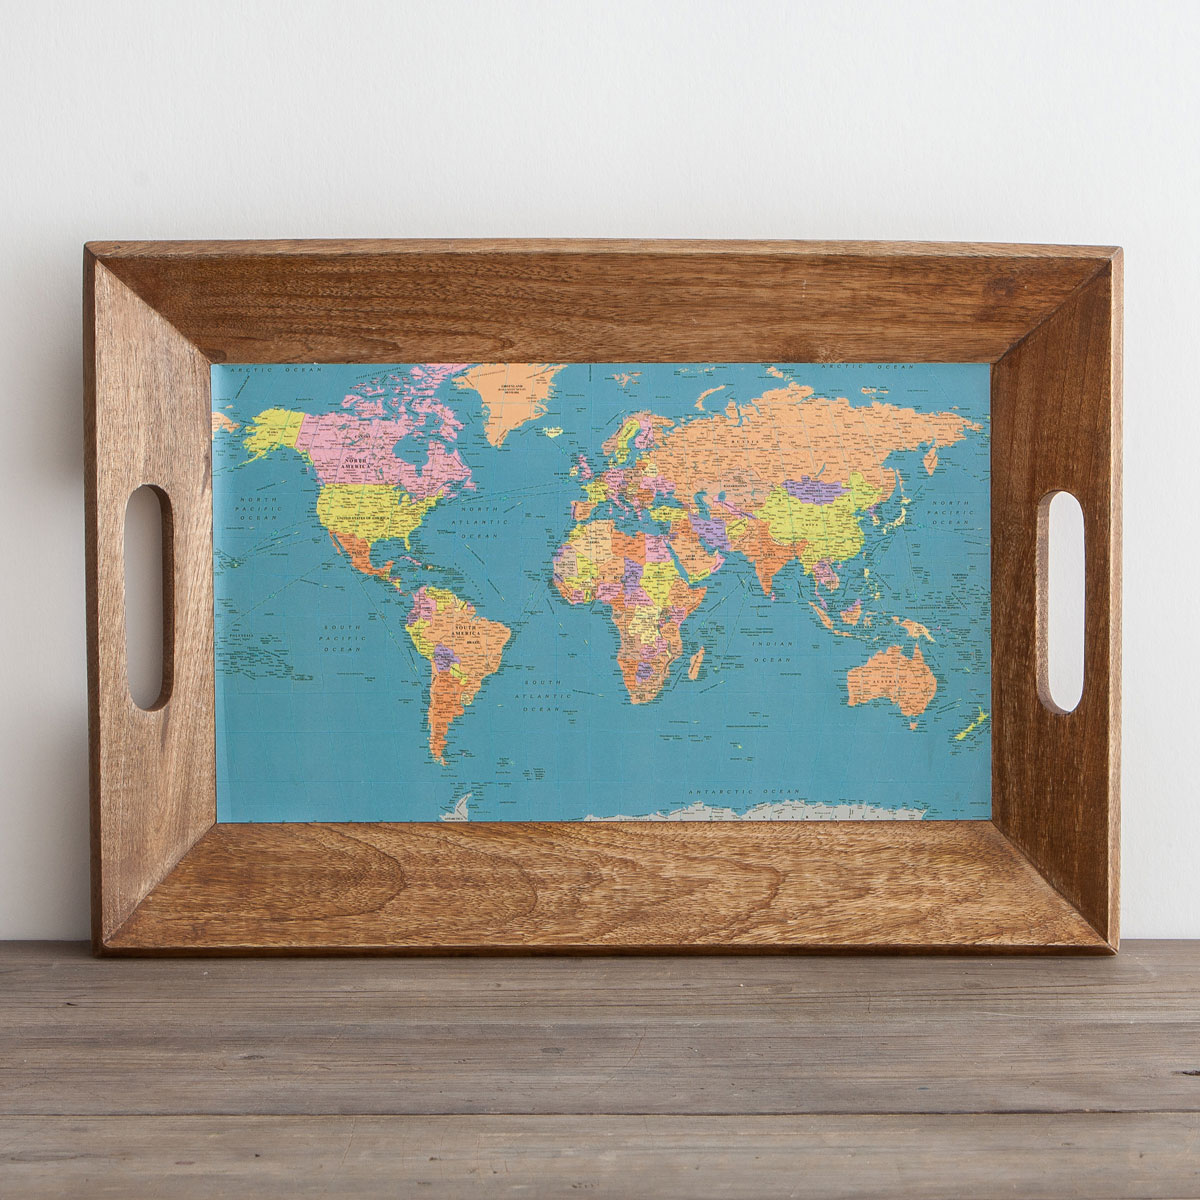 Map of the World - Wooden Tray